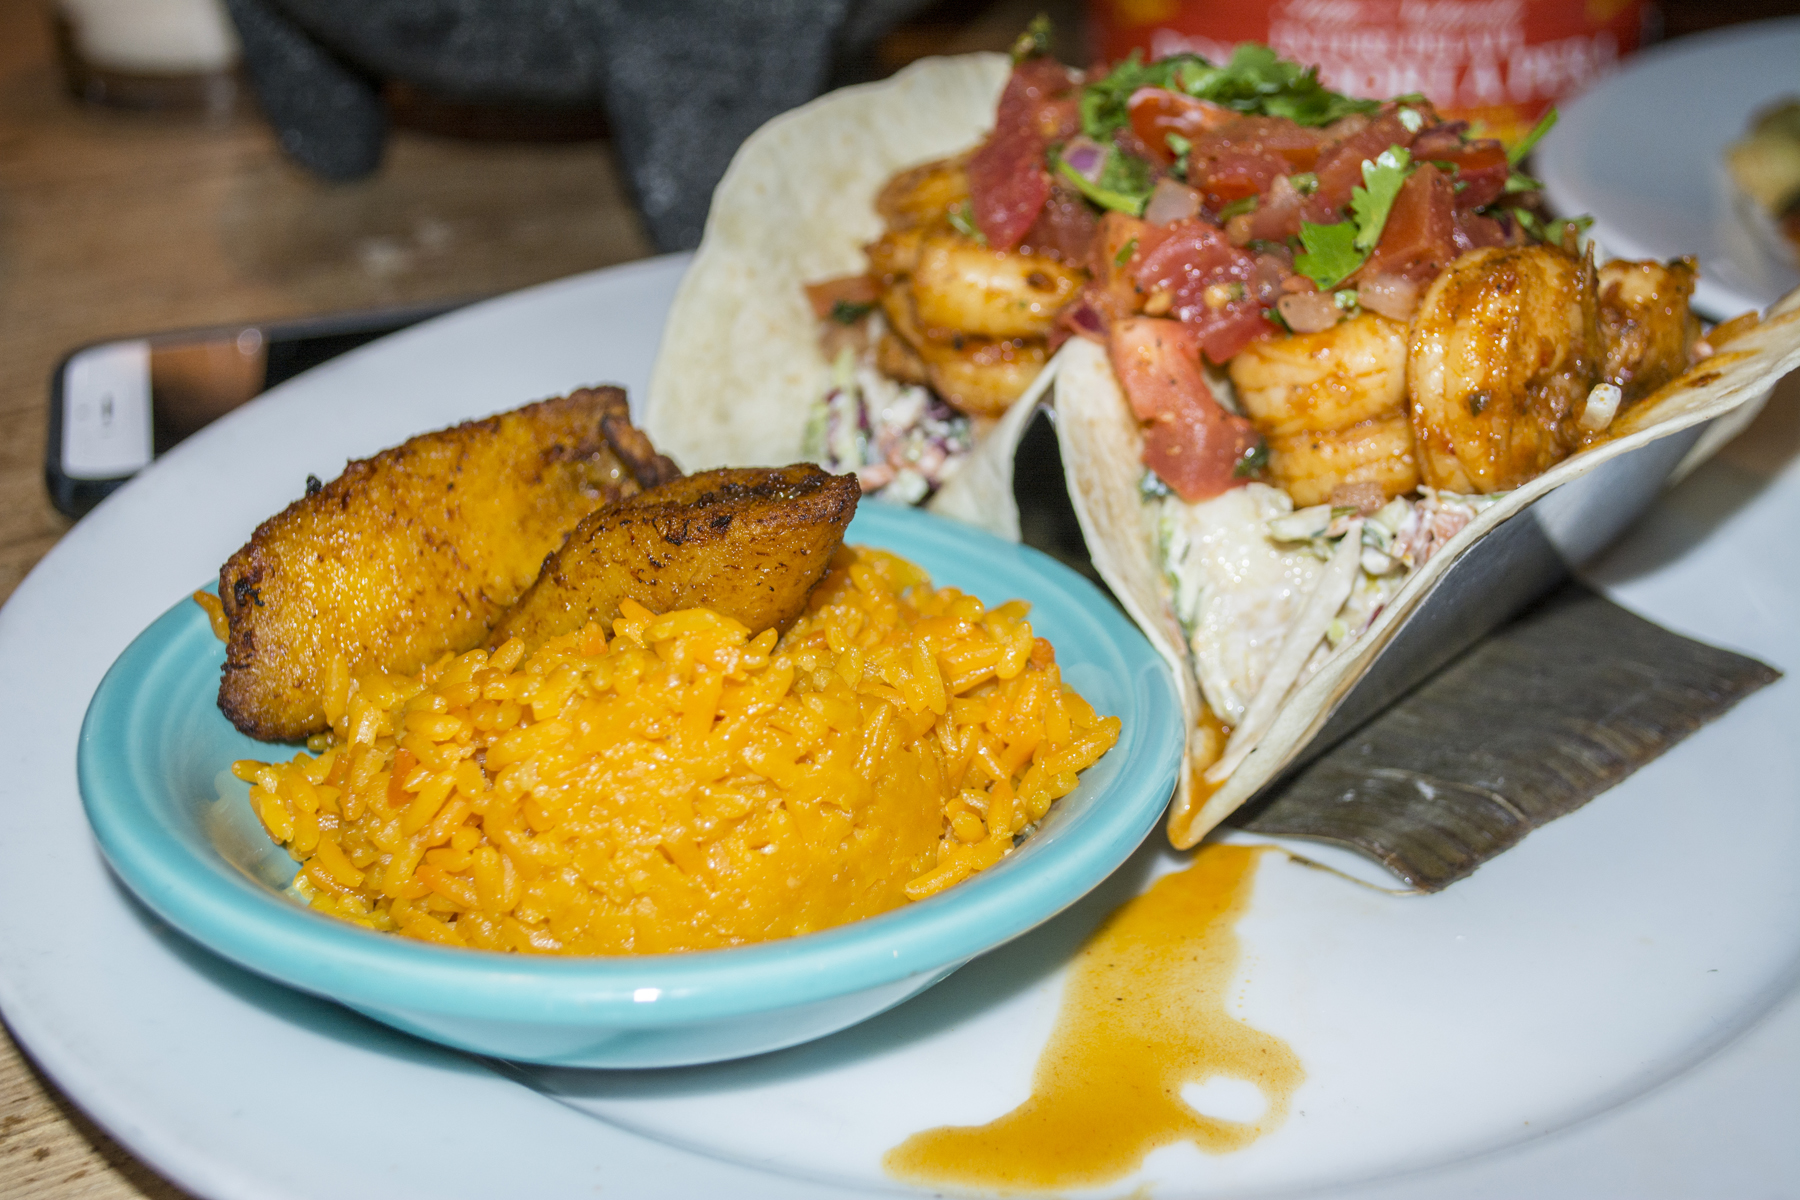 The Angry Shrimp Tacos ($13.95) feature spicy shrimp served with vegetable citrus slaw, lime, margarita crema, Spanish rice and plantains.   Long Islander News photos/Barbara Fiore